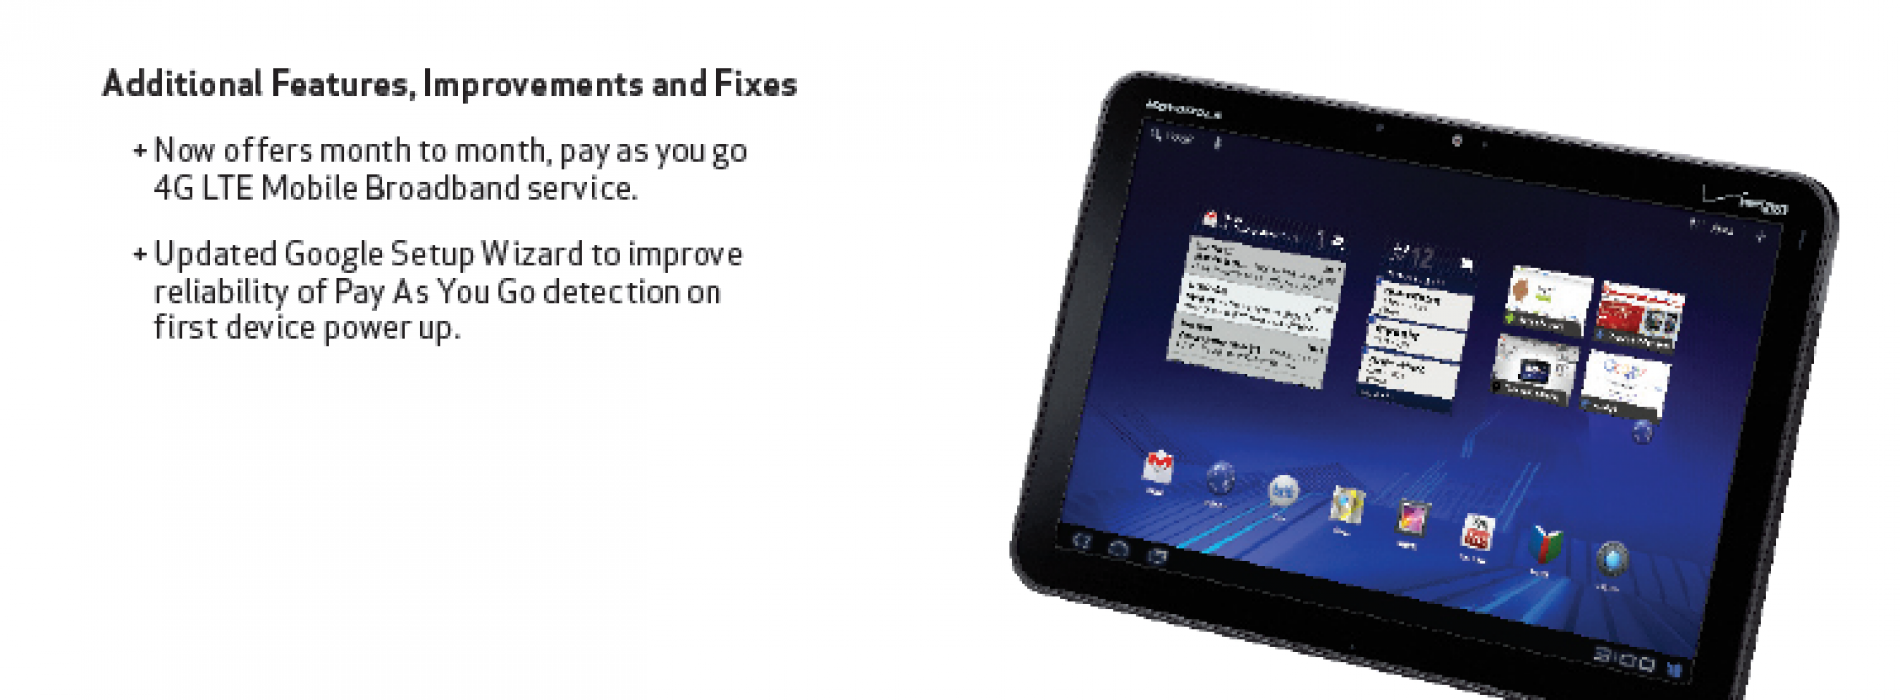 Xoom receives software update, sadly not ICS